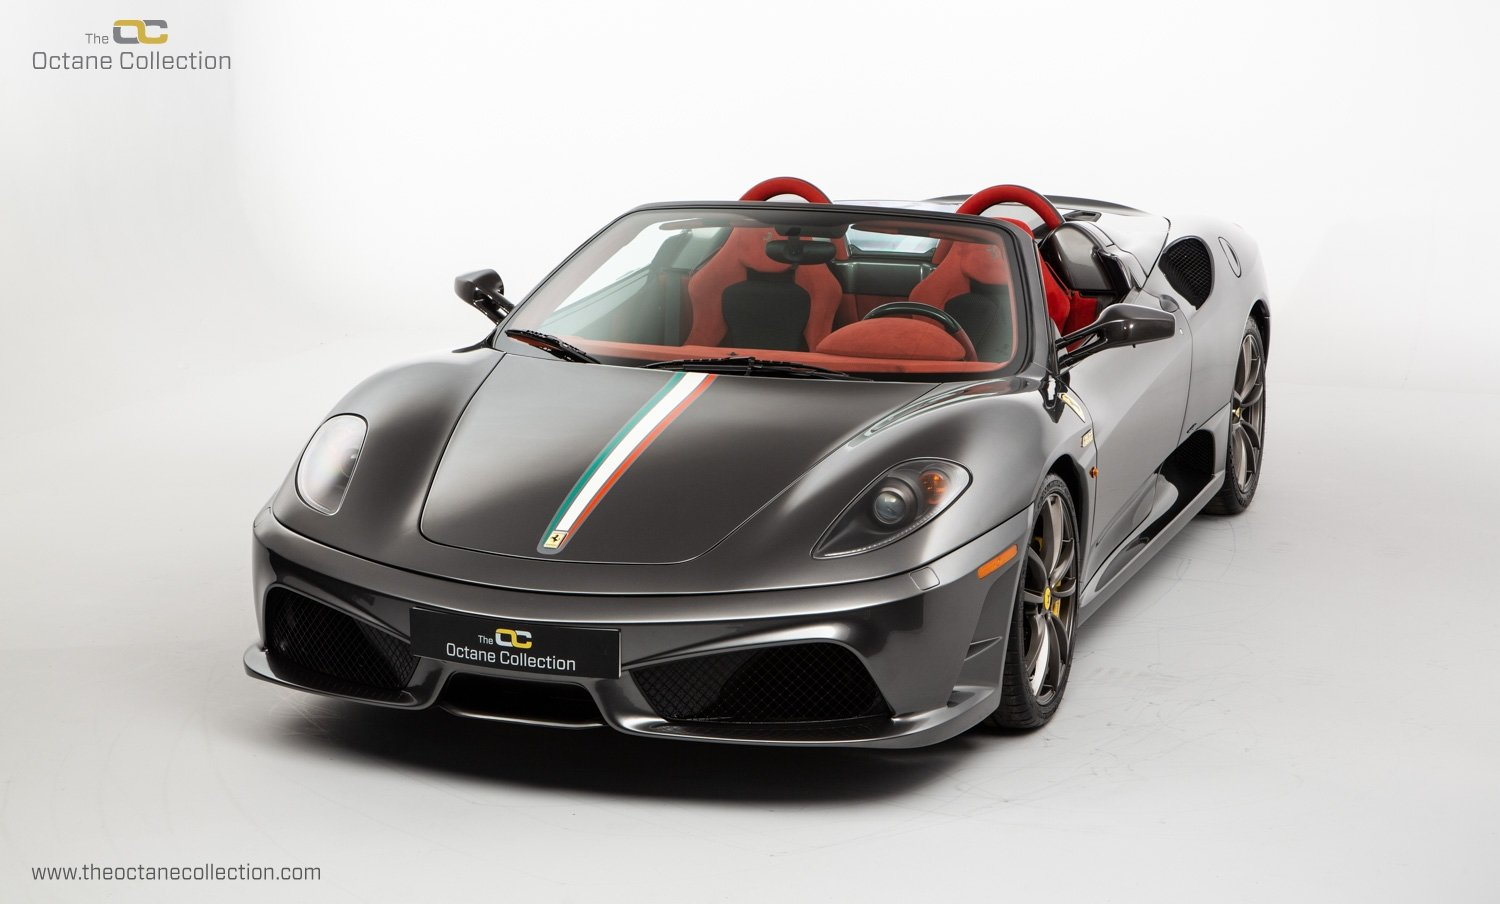 2009 FERRARI 16M SCUDERIA // GRIGIO SILVERSTONE // CARBON FIBRE P For Sale (picture 3 of 20)